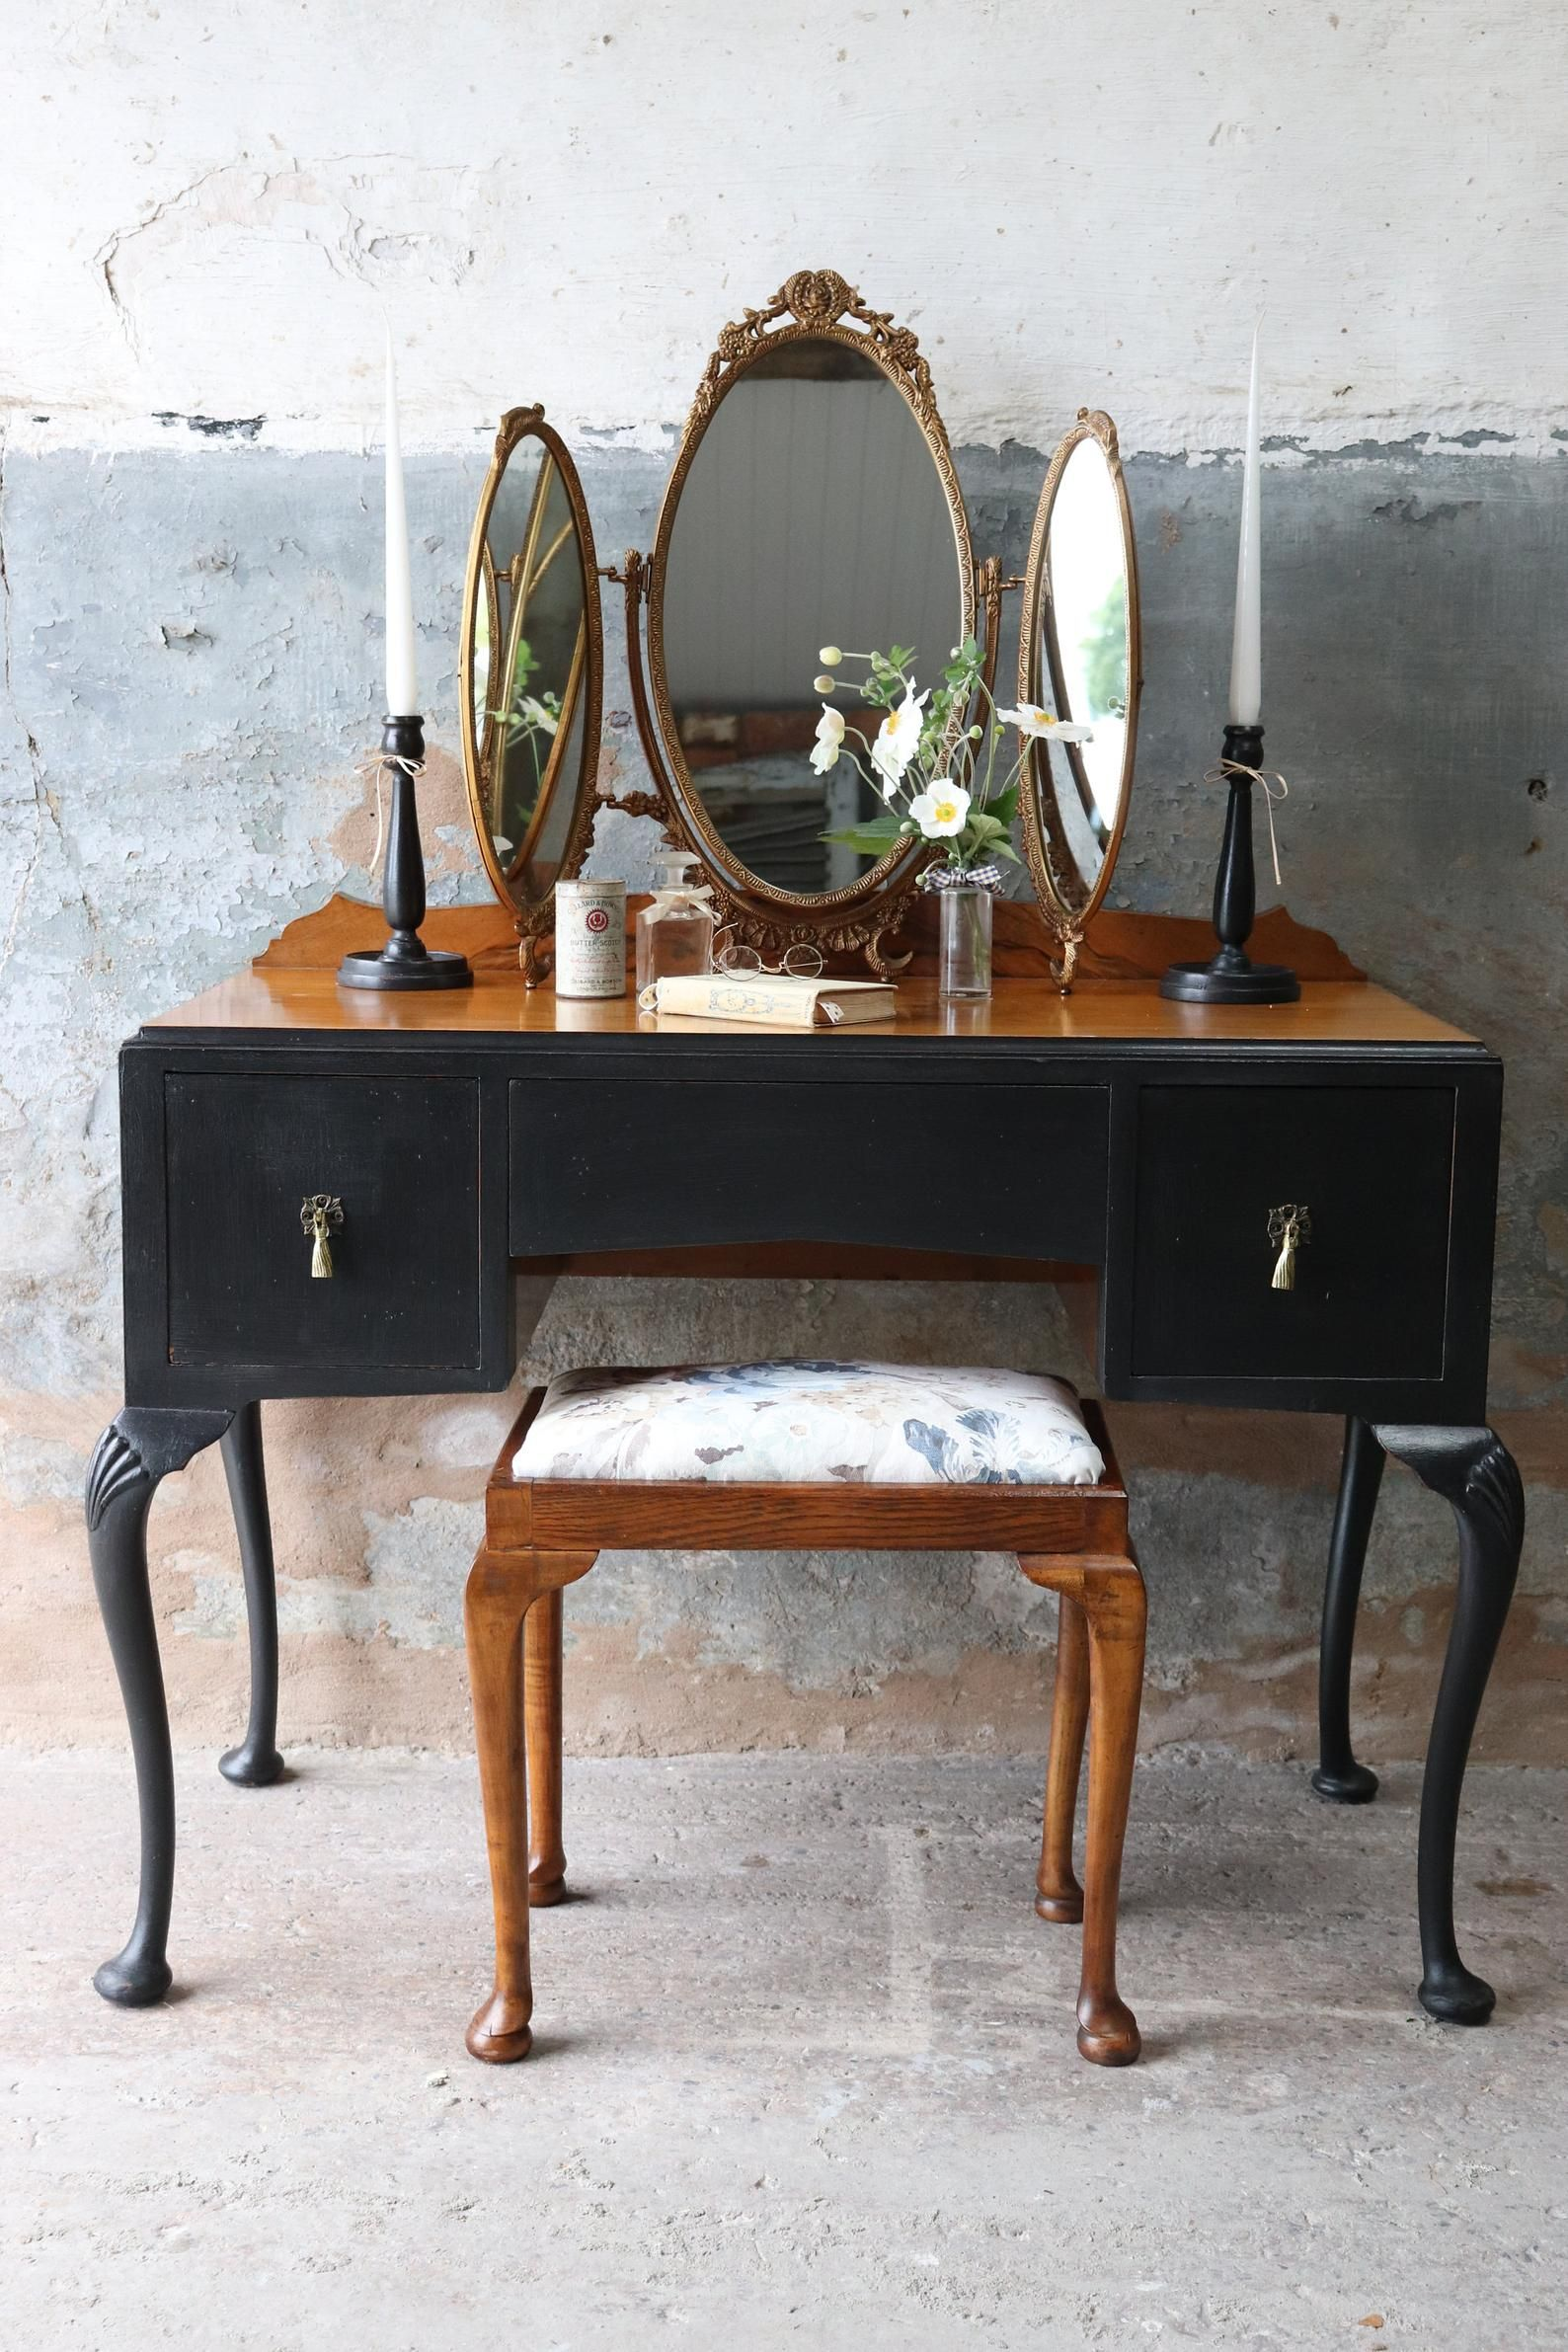 Vintage Dressing Table Stool With Pretty Reupholstered Seat